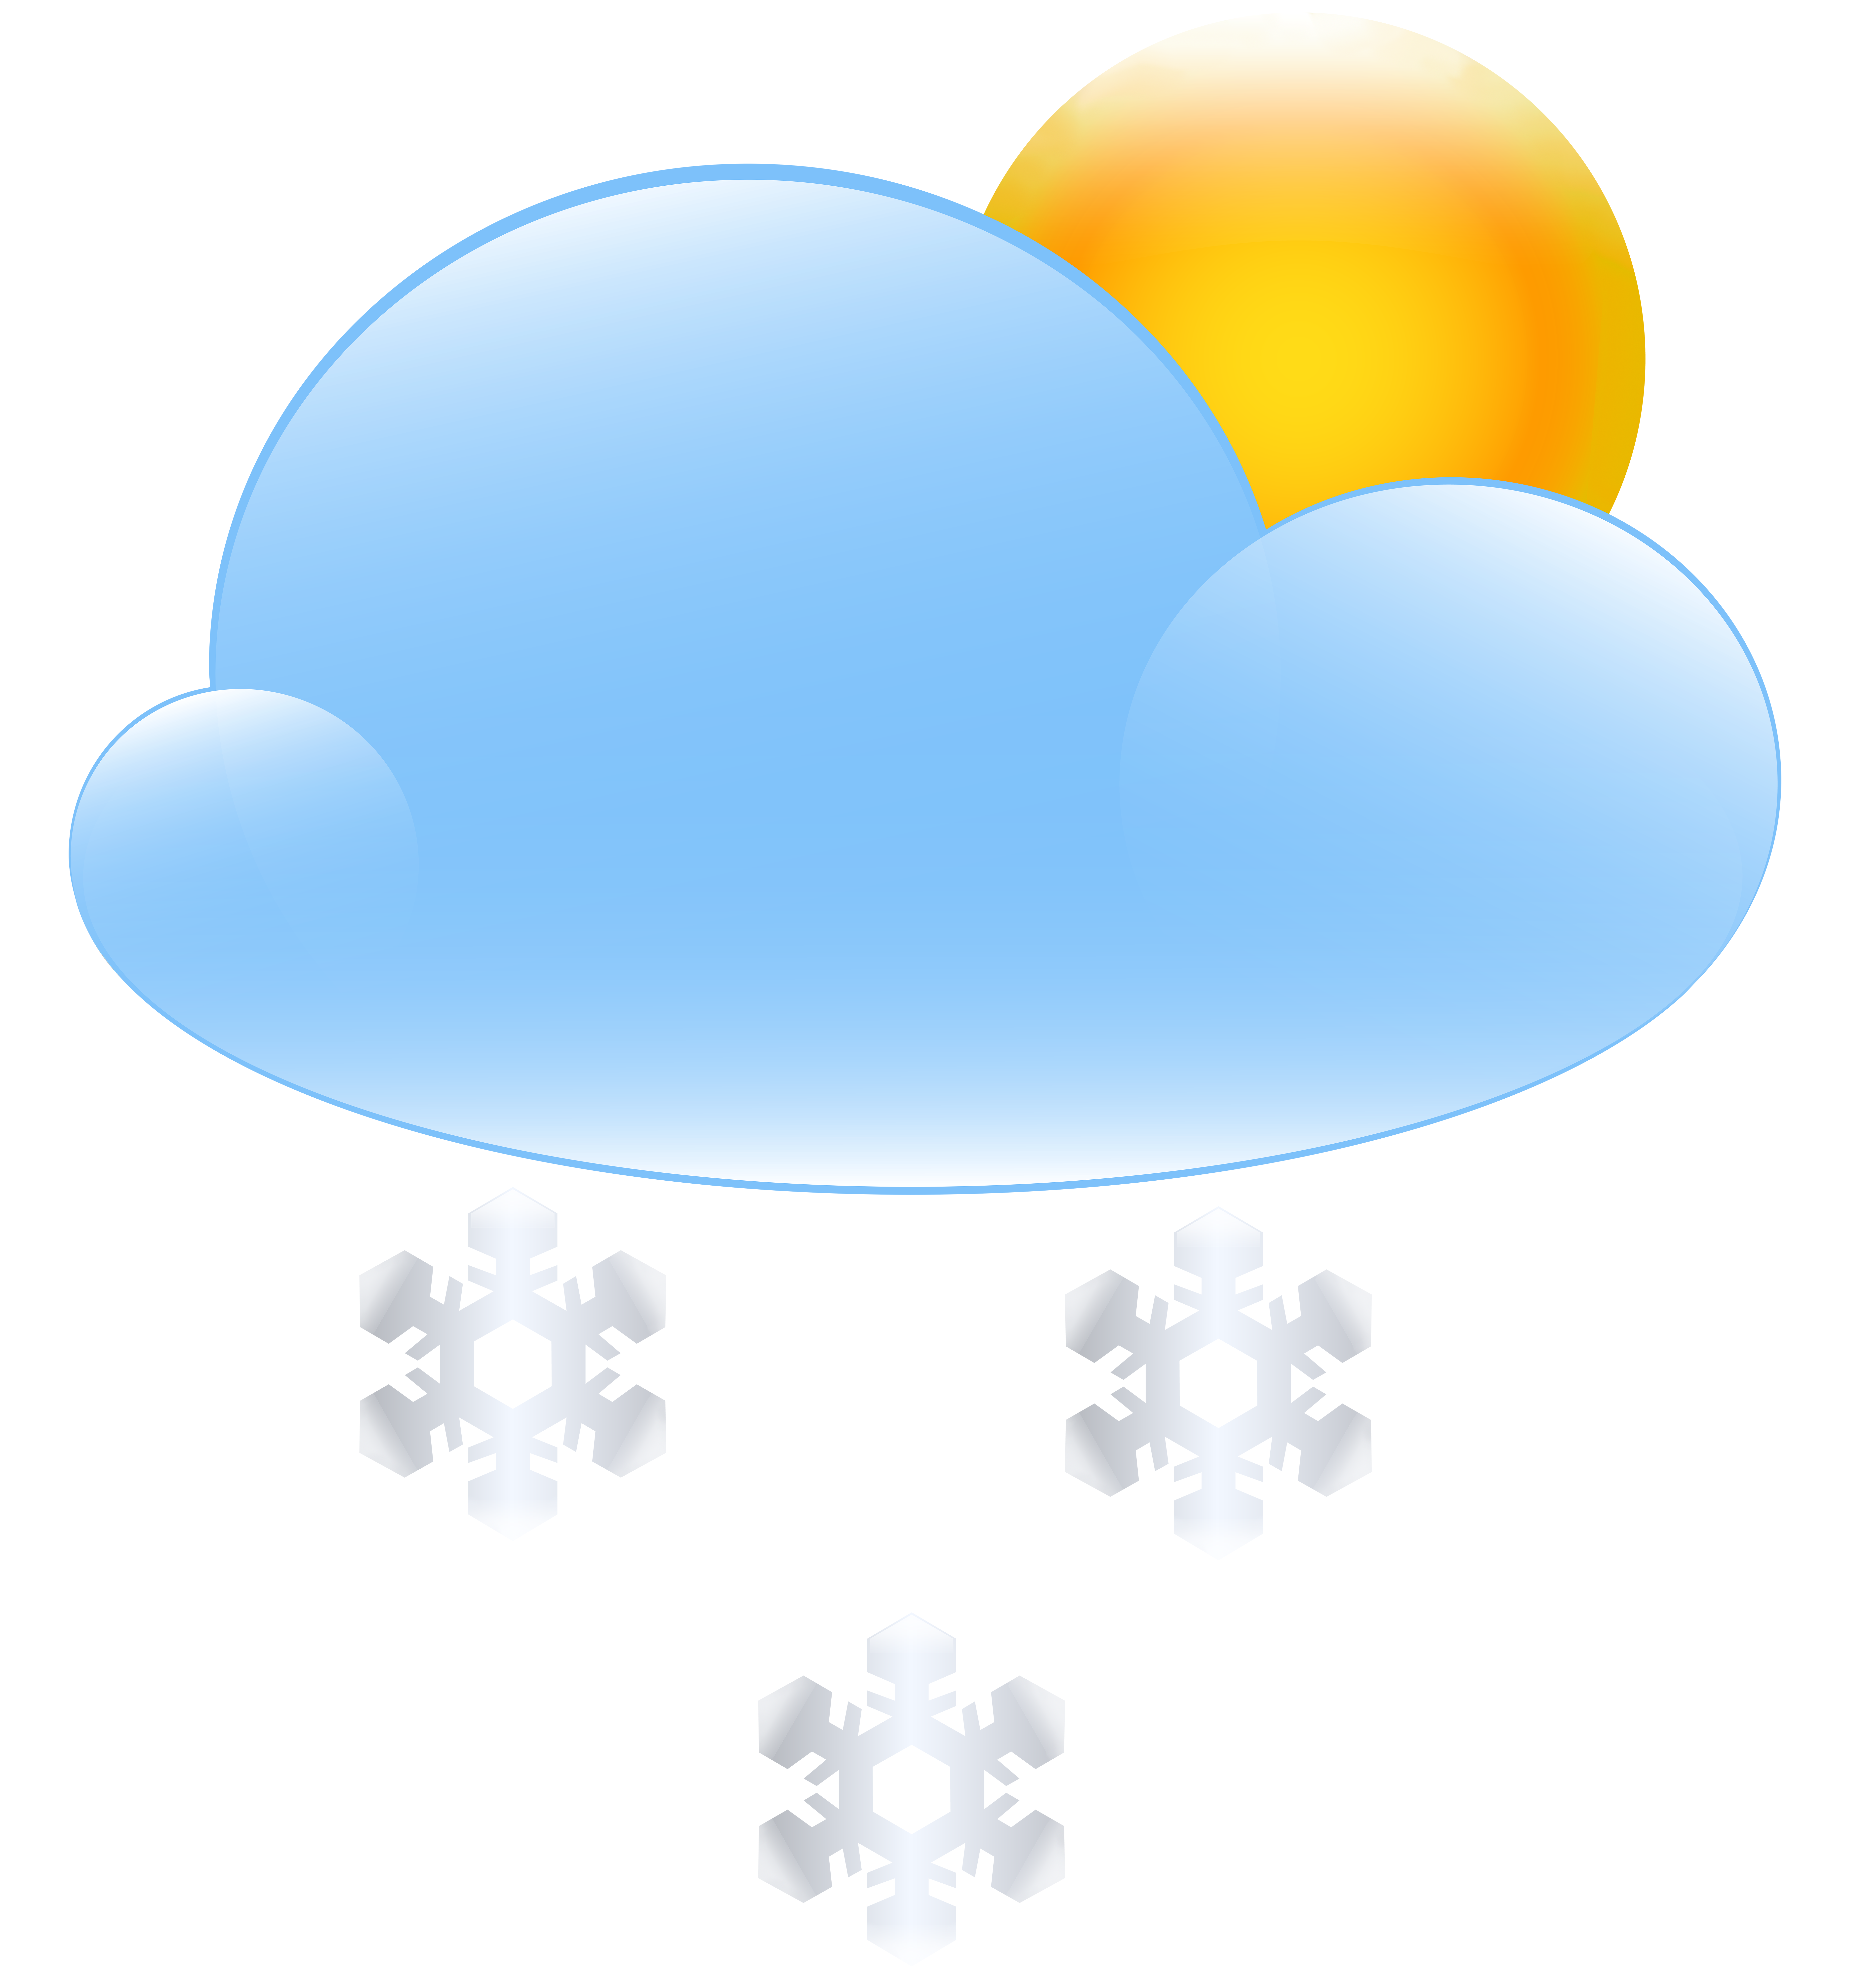 7446x8000 Sun Cloud And Snow Weather Icon Png Clip Art